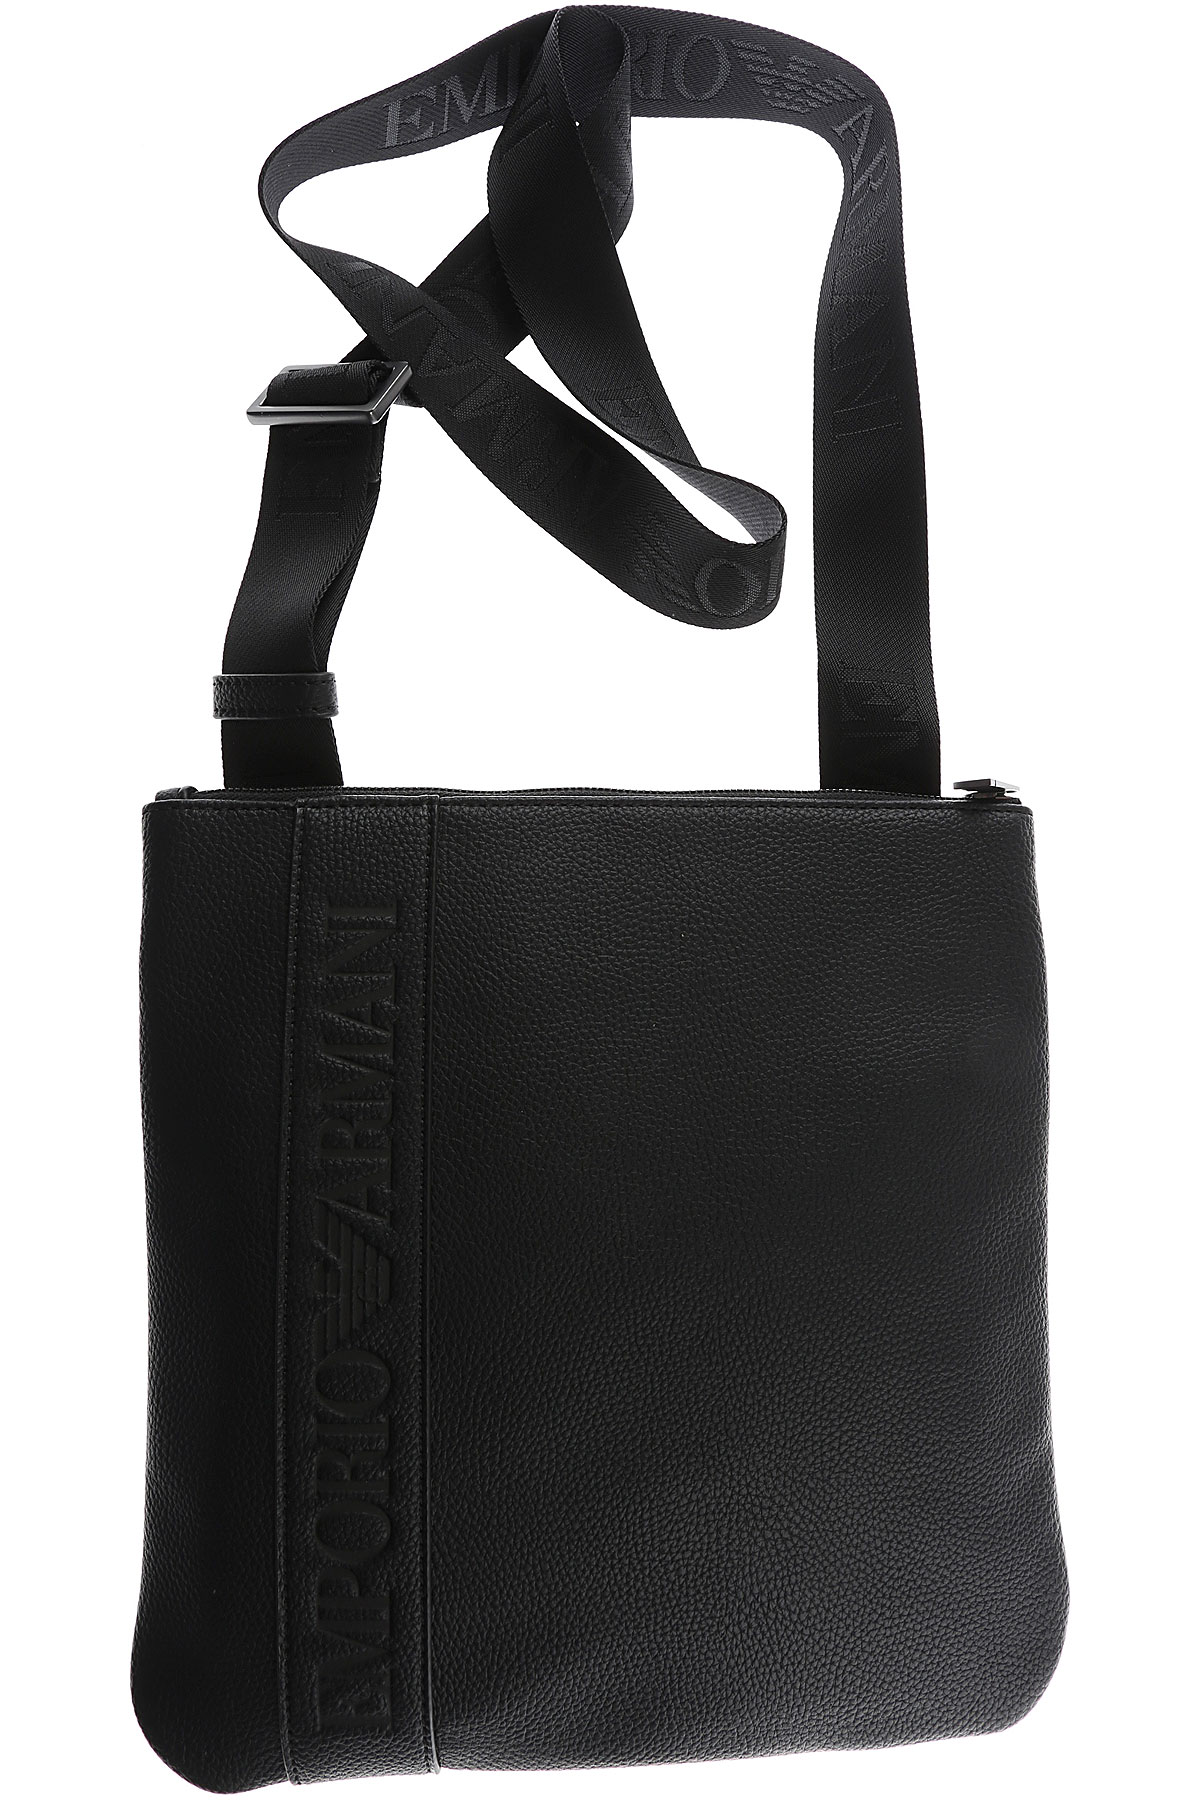 Image of Emporio Armani Messenger Bag for Men, Black, Leather, 2017, one size one size